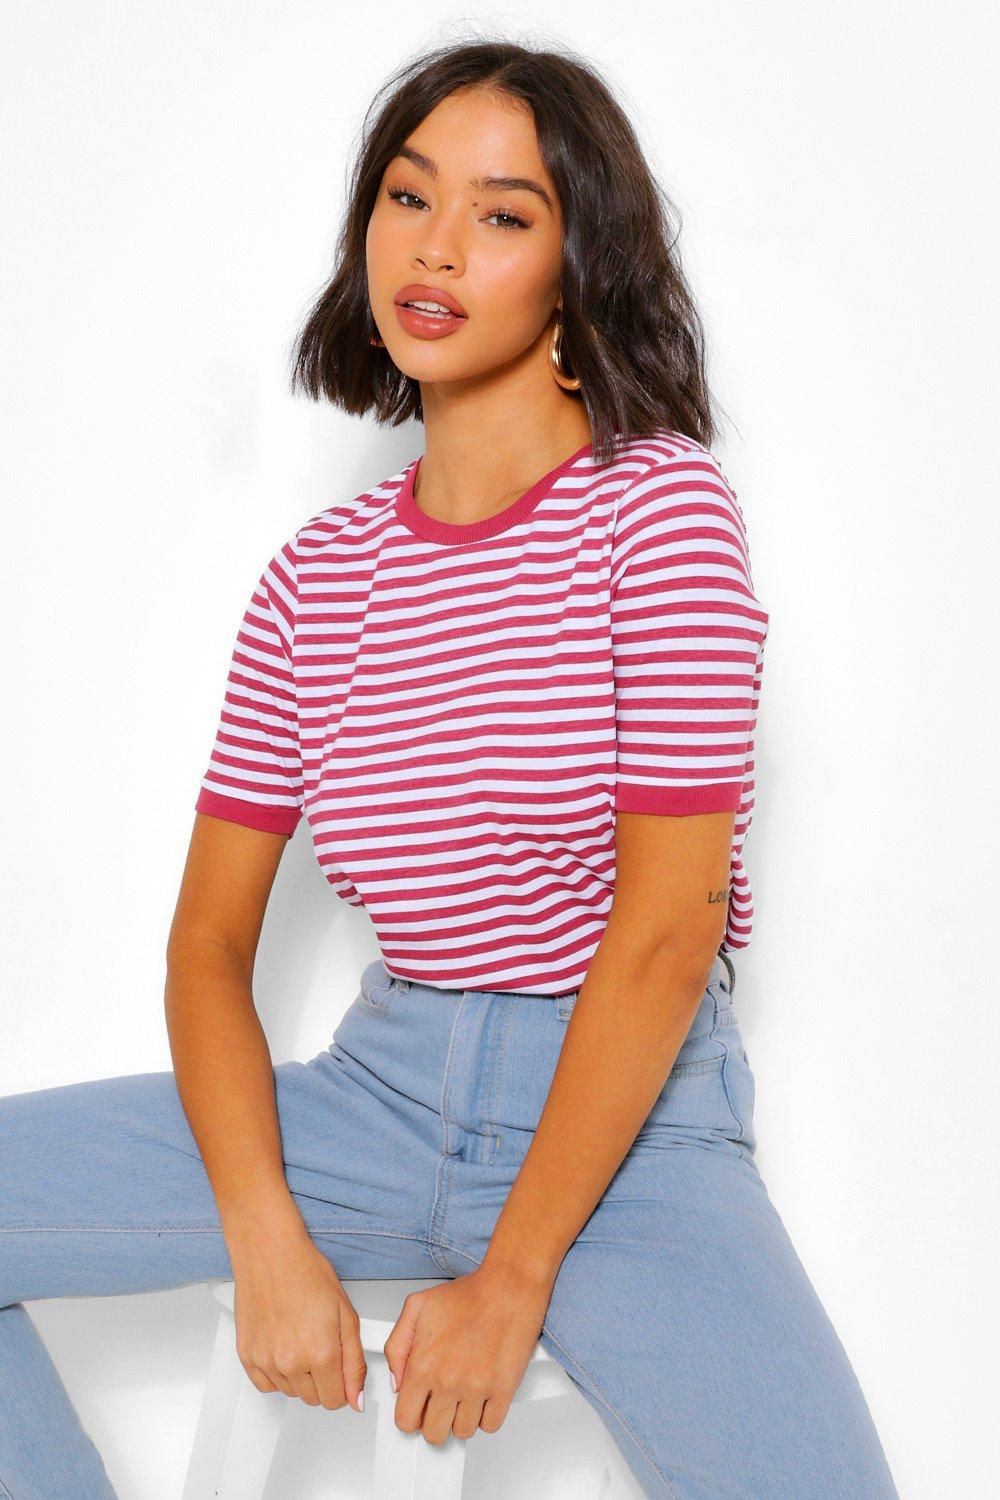 1940s Blouses and Tops Womens Stripe Ringer T Shirt - Red - M $8.40 AT vintagedancer.com